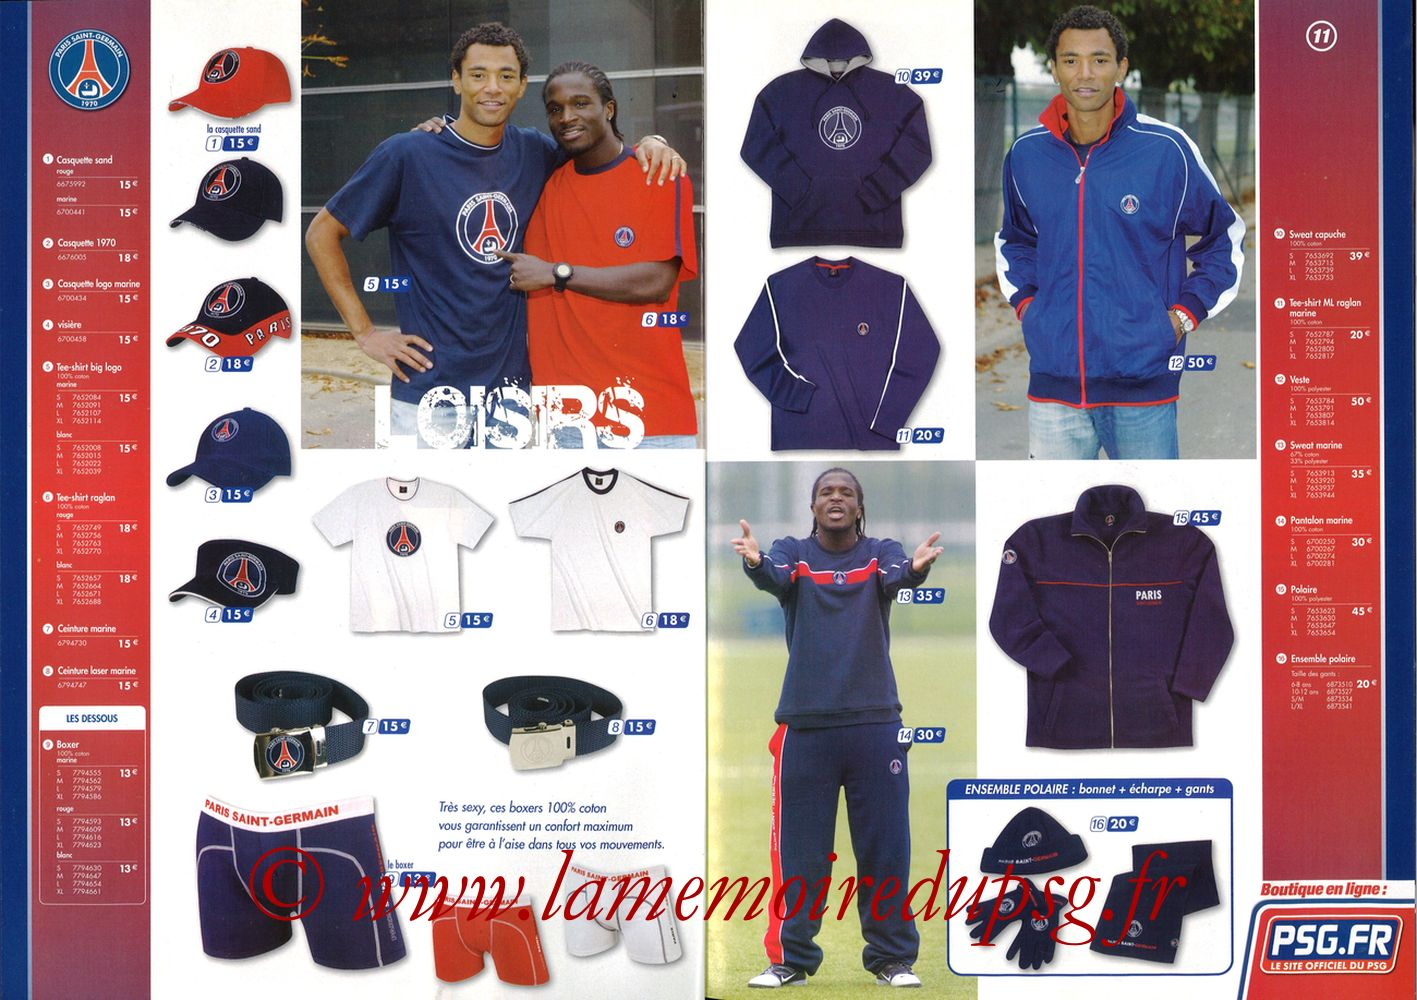 Catalogue PSG - 2005-06 - Pages 10 et 11